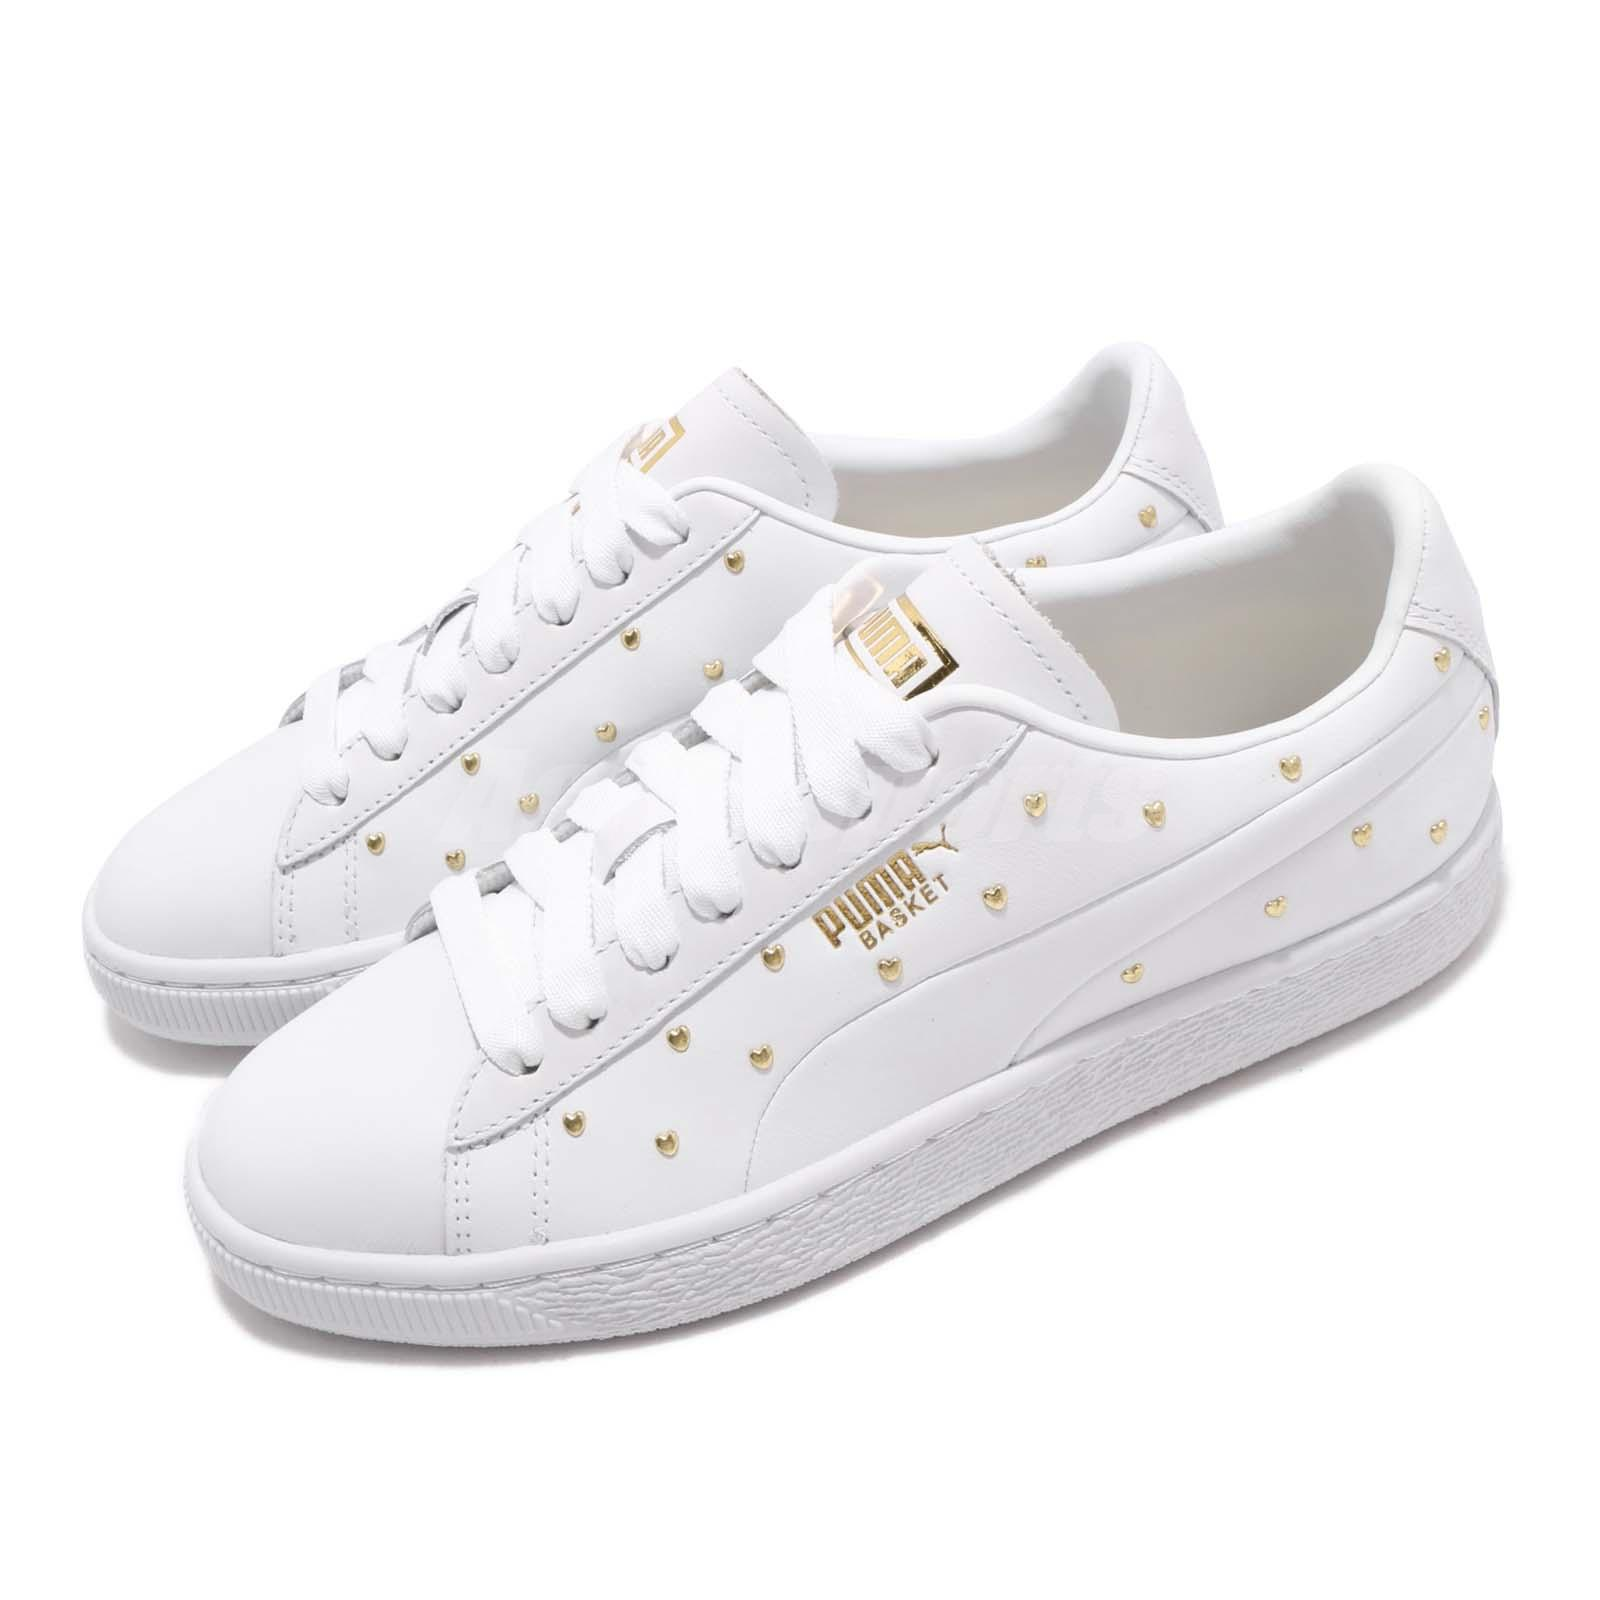 165adc9da6 Details about Puma Basket Studs Wns White Gold Women Casual Lifestyle Shoes  Sneakers 369298-01